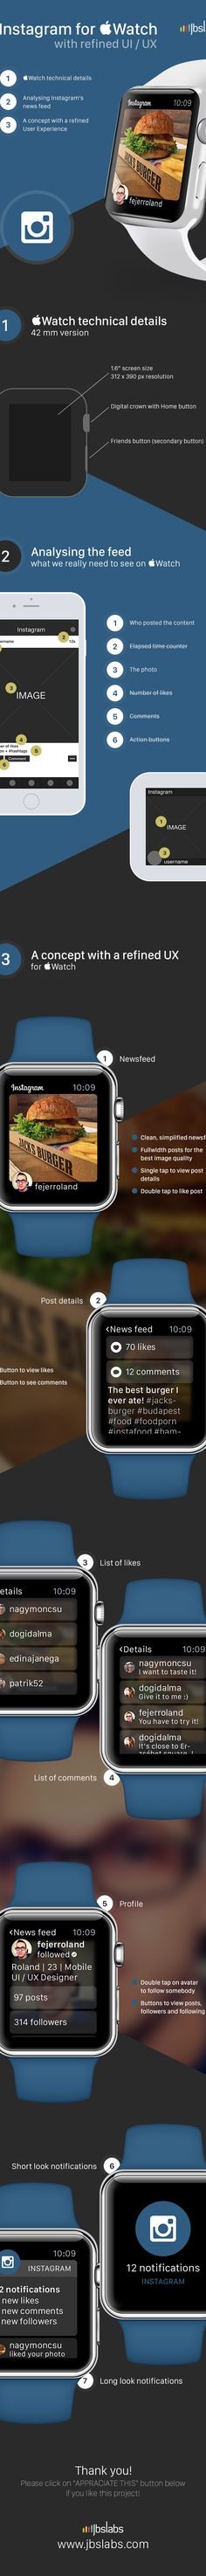 #Instagram for #Apple Watch with refined UI / UX on Behance